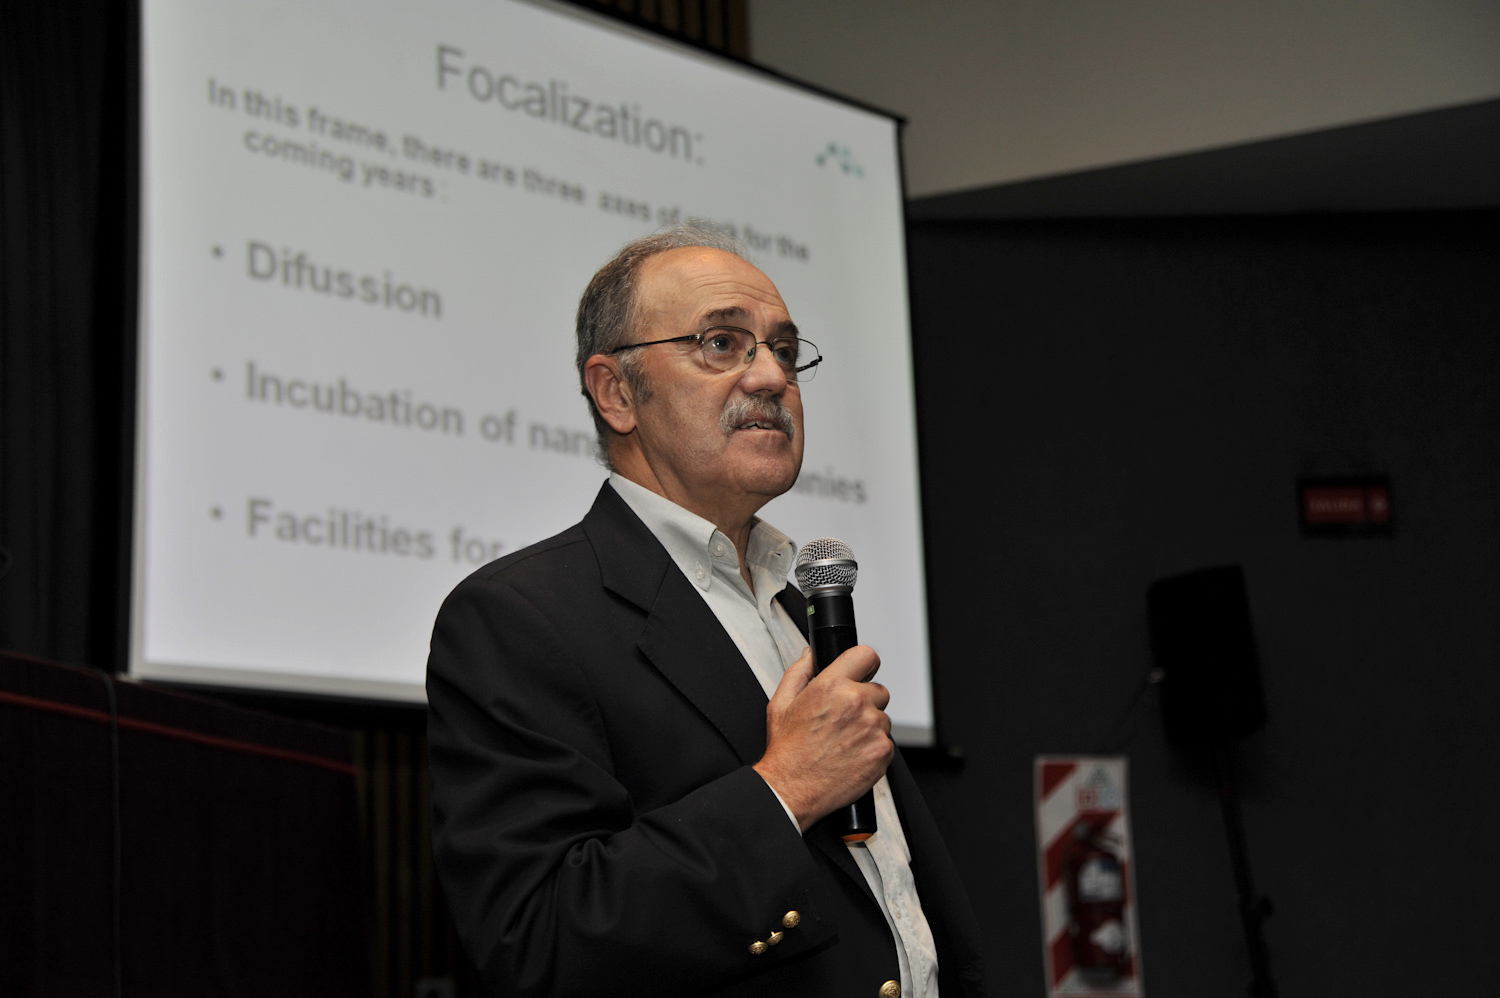 Barañao delivered a lecture at Harvard and signed a cooperation agreement in Computer Science